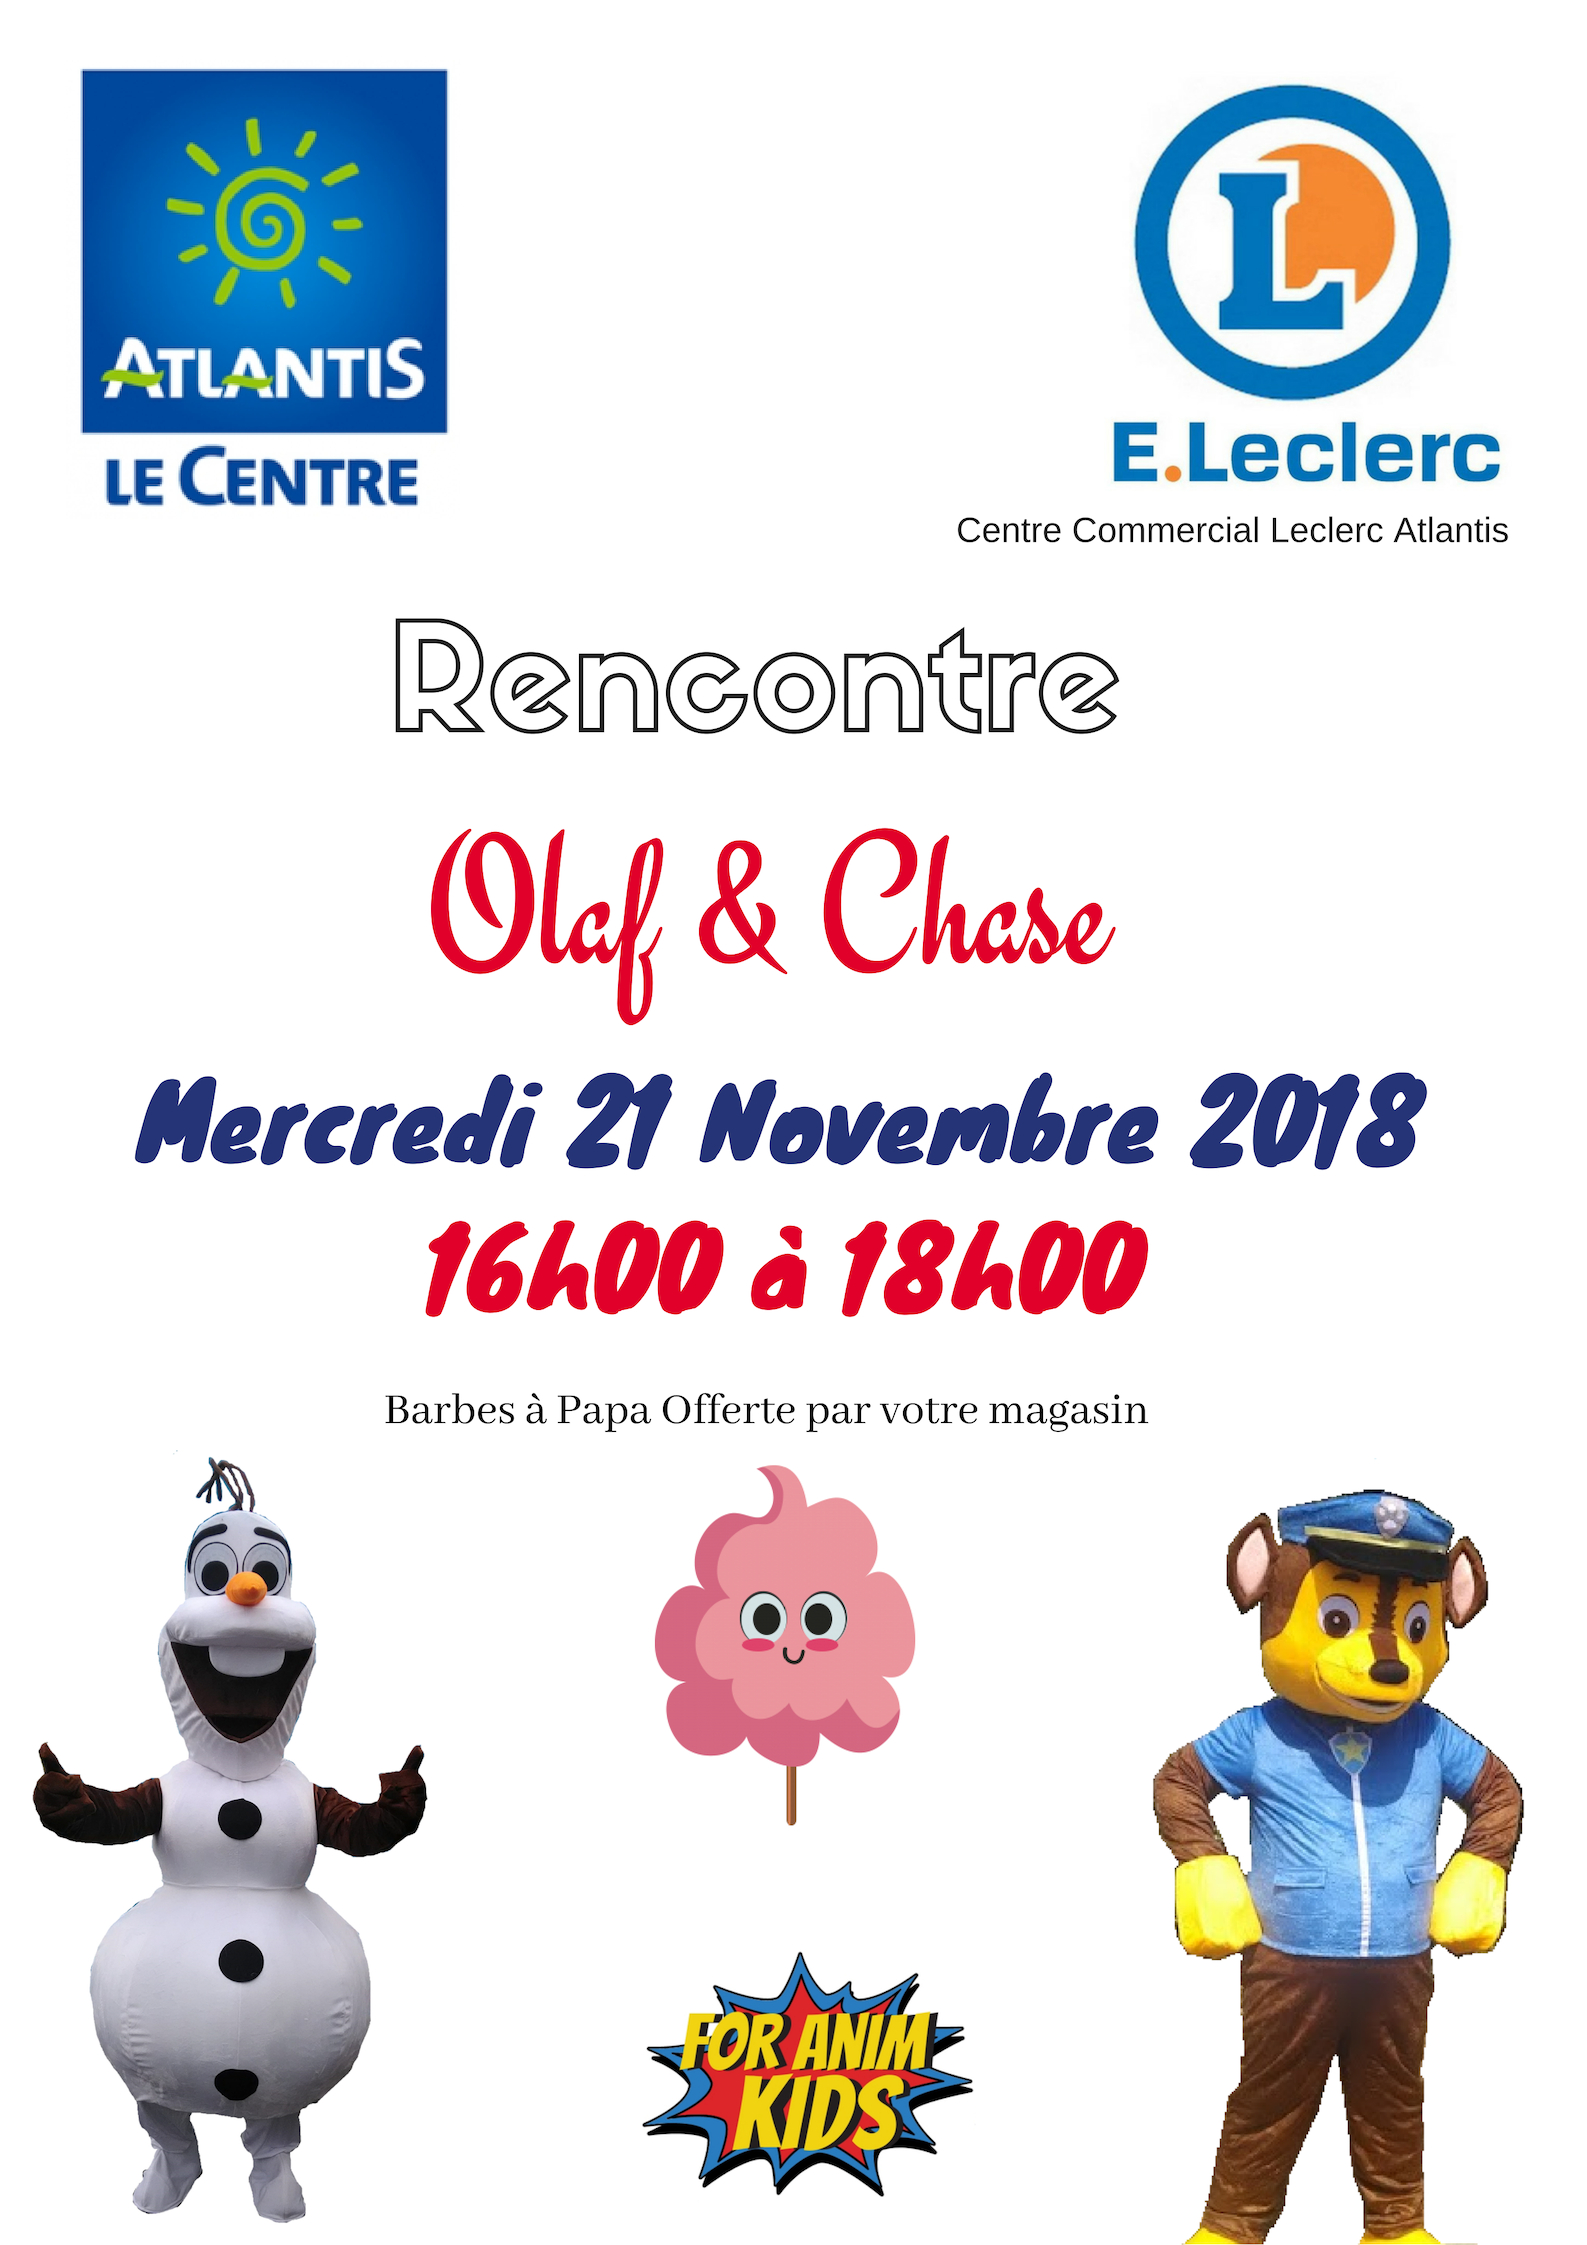 evenement atlantis leclerc olaf